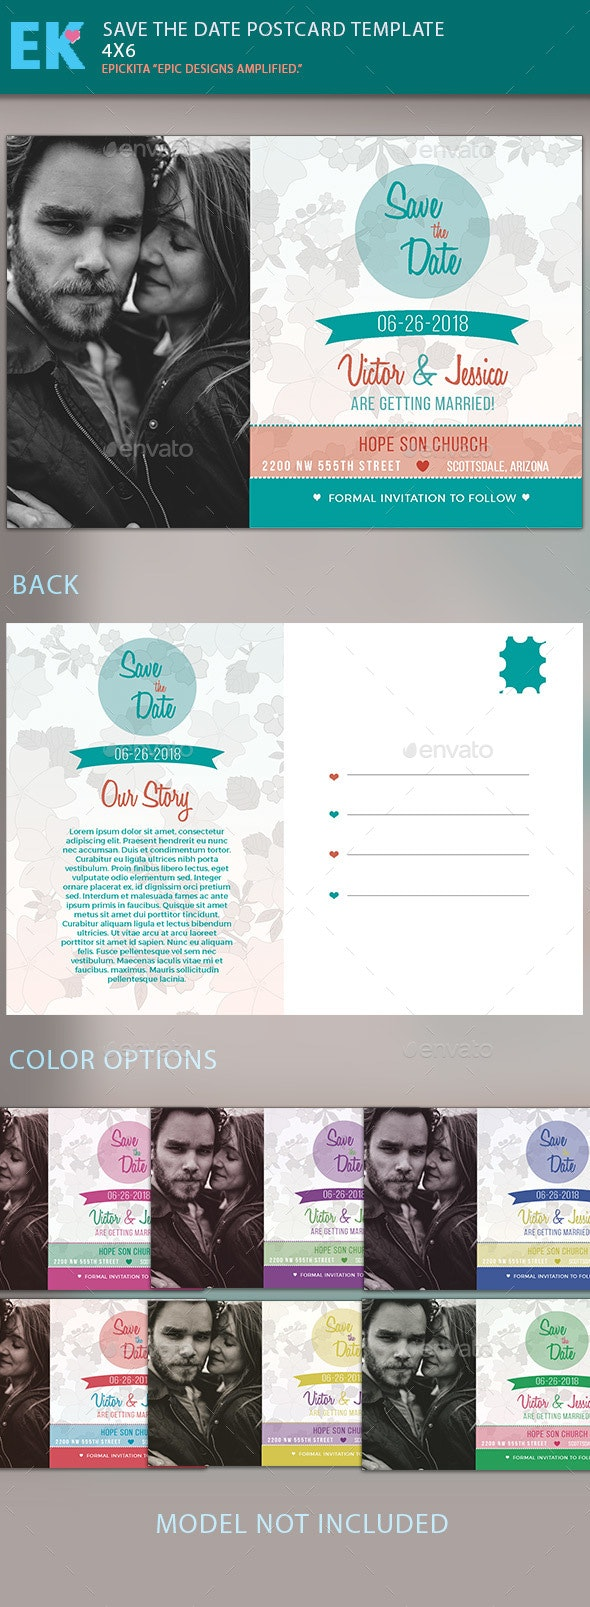 Save the Date Postcard Template - Invitations Cards & Invites